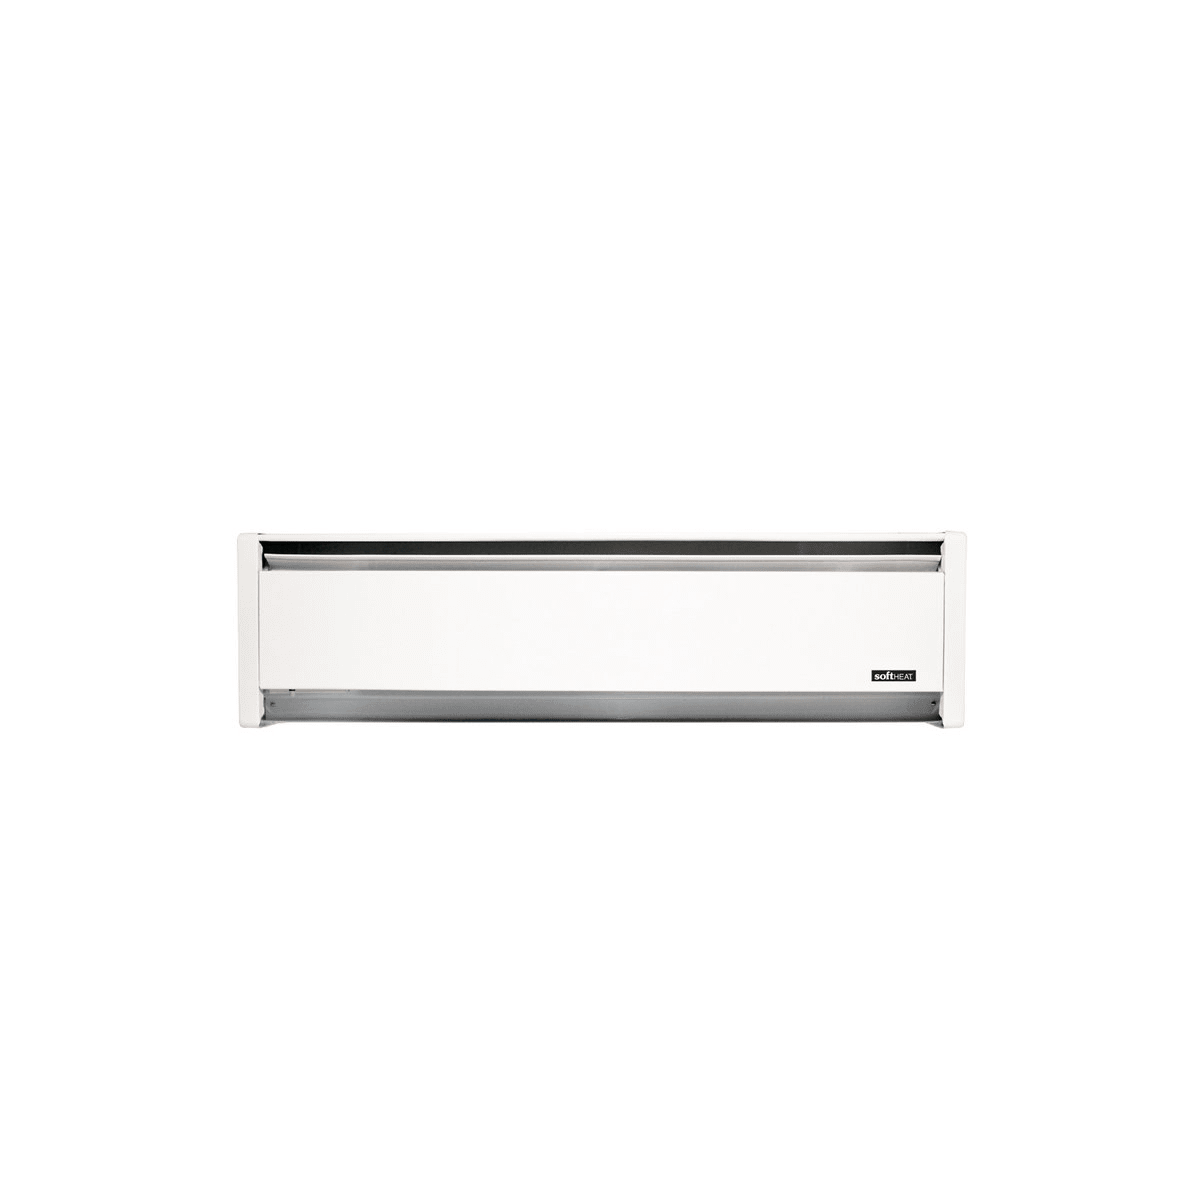 hight resolution of 71 inch wide 4265 btu 208 240 volt 1250 watt self contained hydronic baseboard heater with right hand wiring from the softheat series